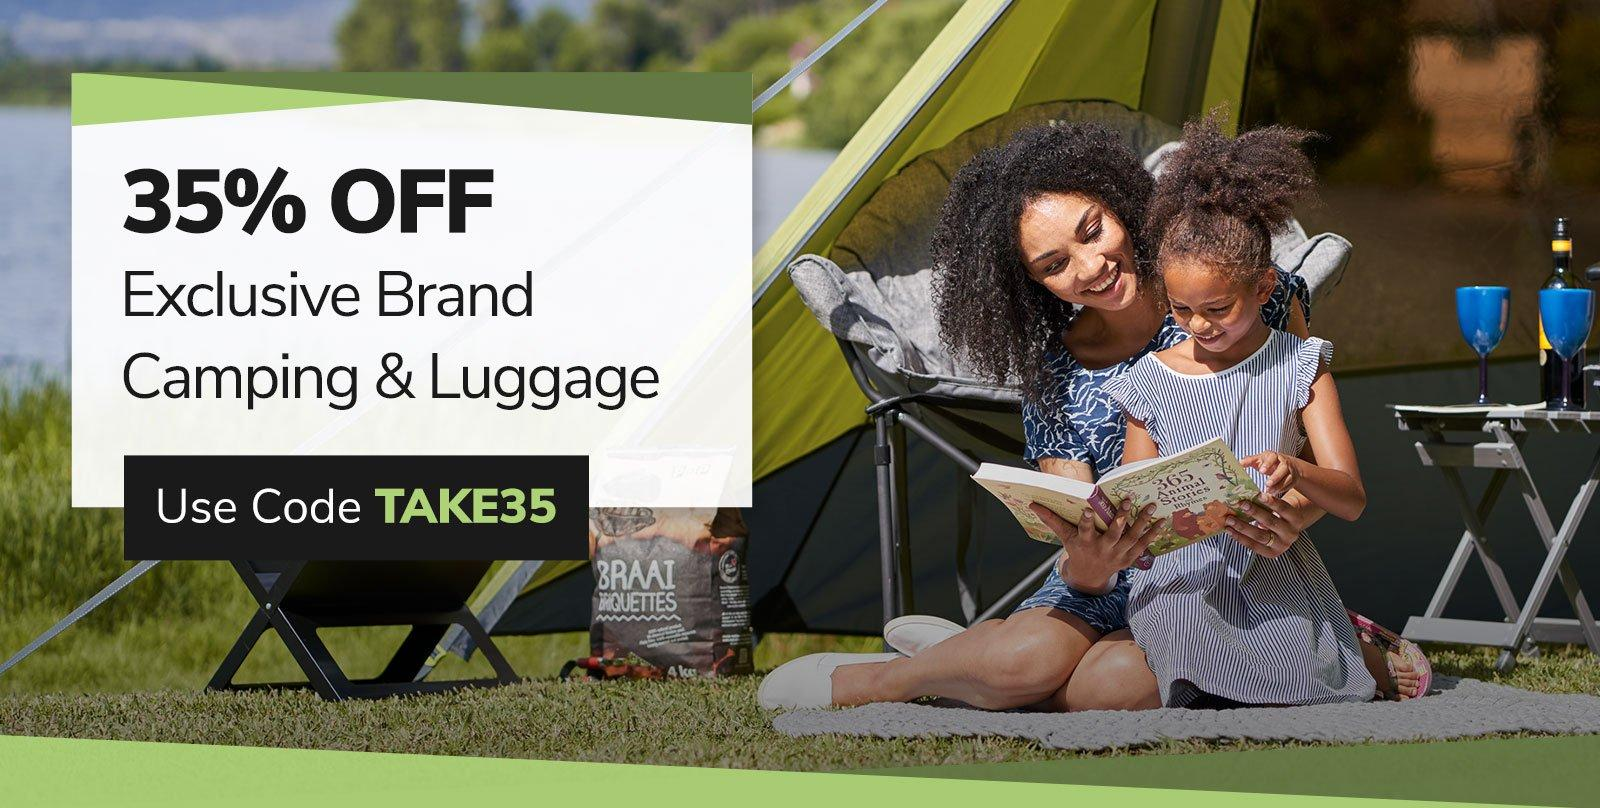 35% Off Exclusive Brand Camping and Luggage